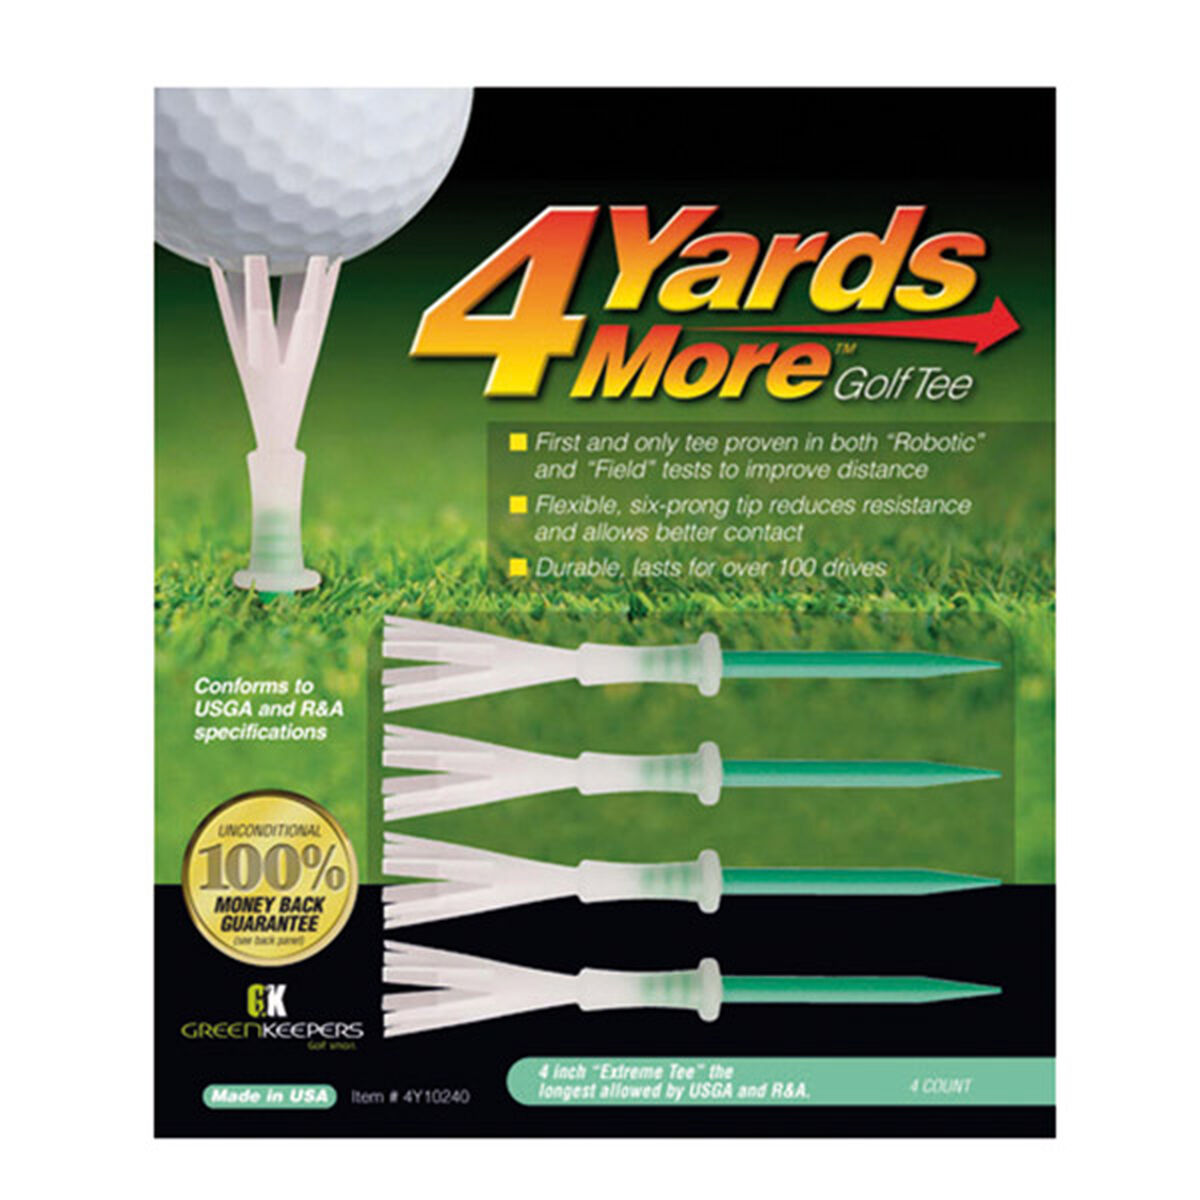 """4 Yards More Green Pack of 4 Extreme Golf Tees, Size: 4"""", 4 inches 